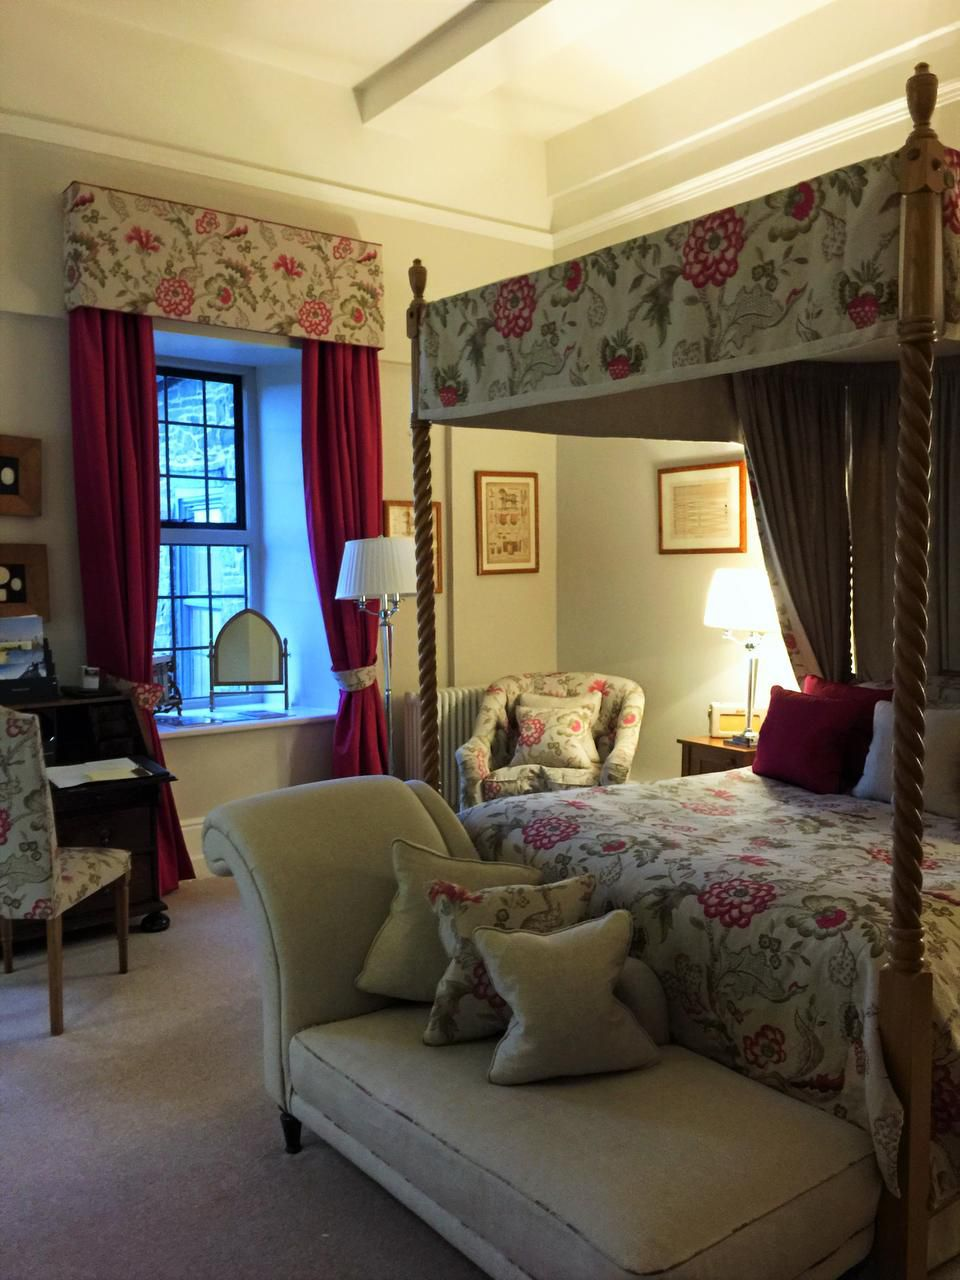 Rooms at Llangoed Hall, a luxury hotel, are large and inviting, as one might expect of an Edwardian mansion once owned by Sir Bernard Ashley and his wife,  designer Laura Ashley.